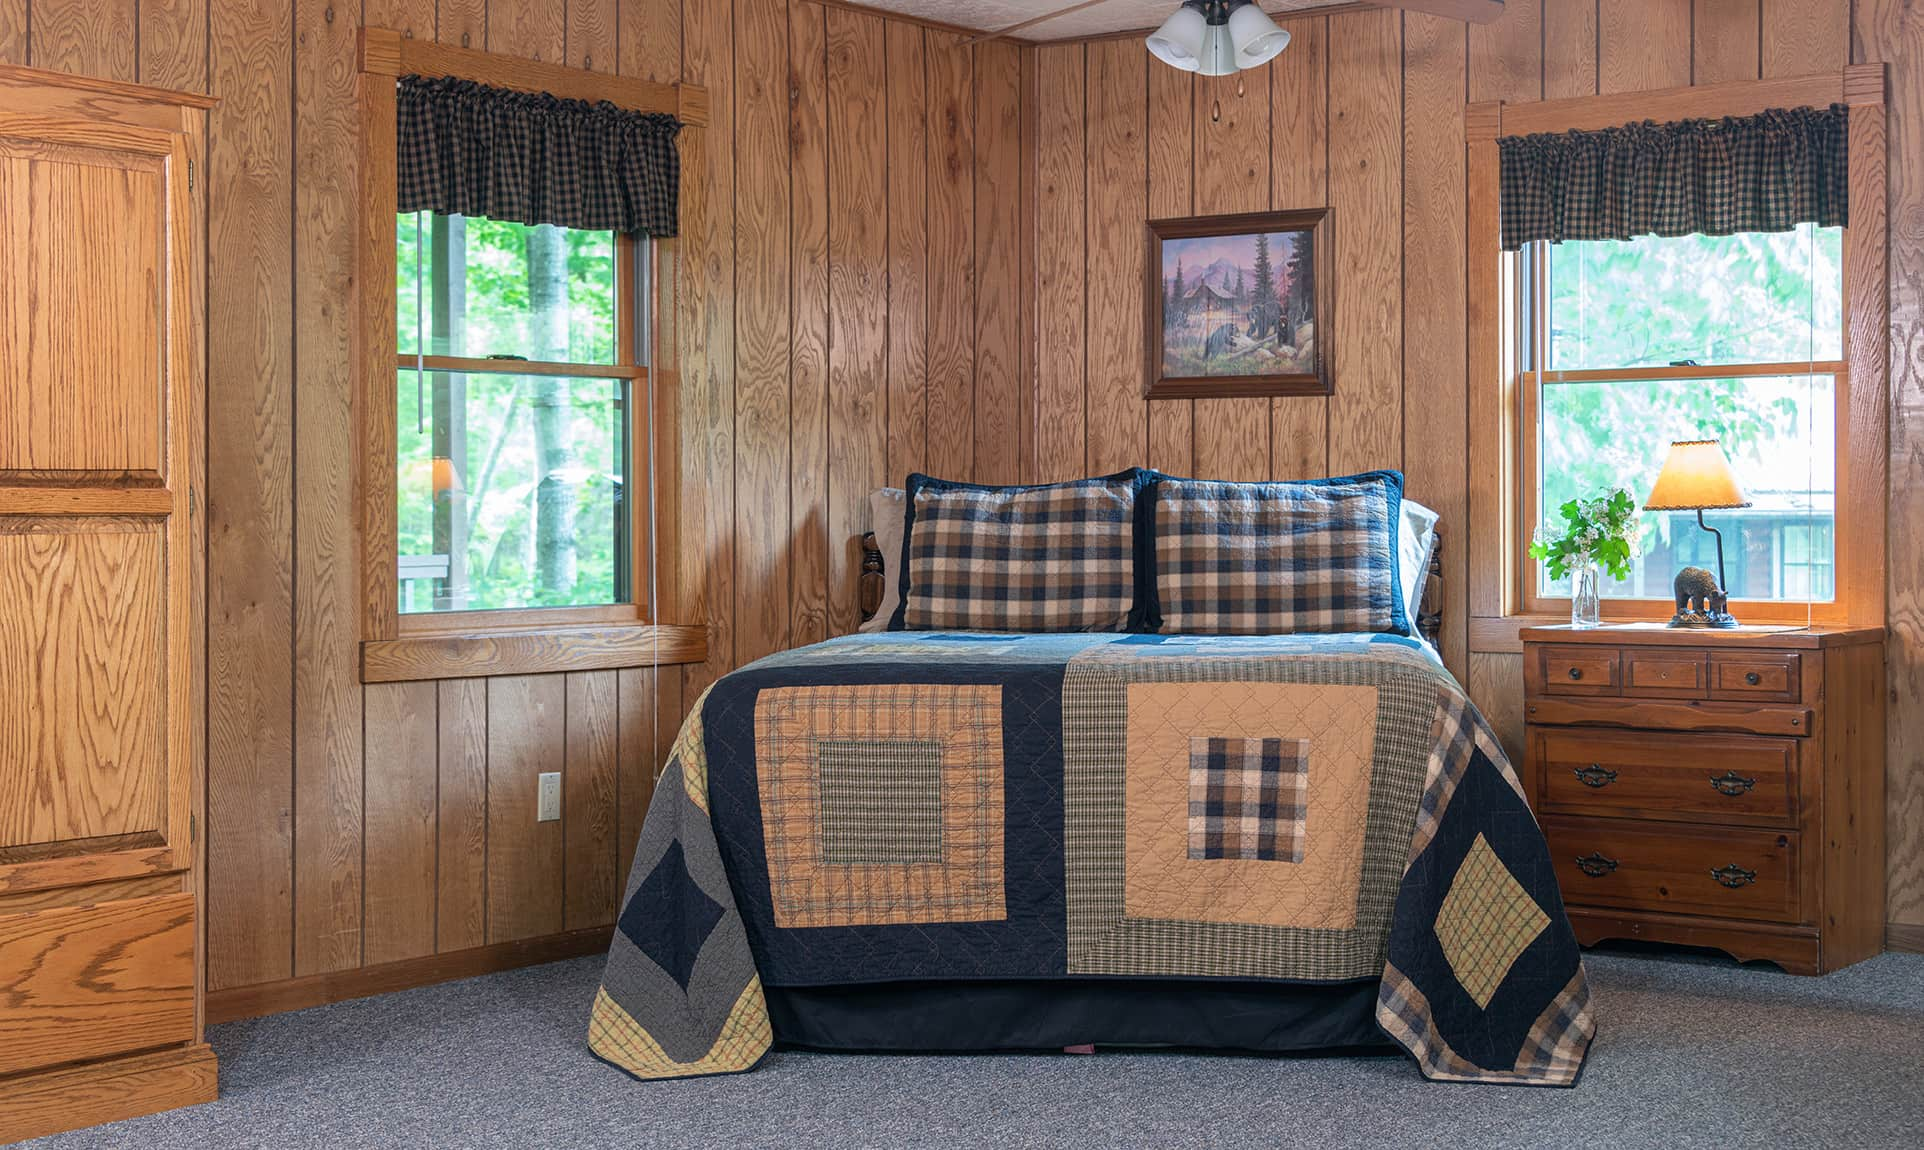 Wilderness Cabin bed - Starved Rock lodging in Illinois